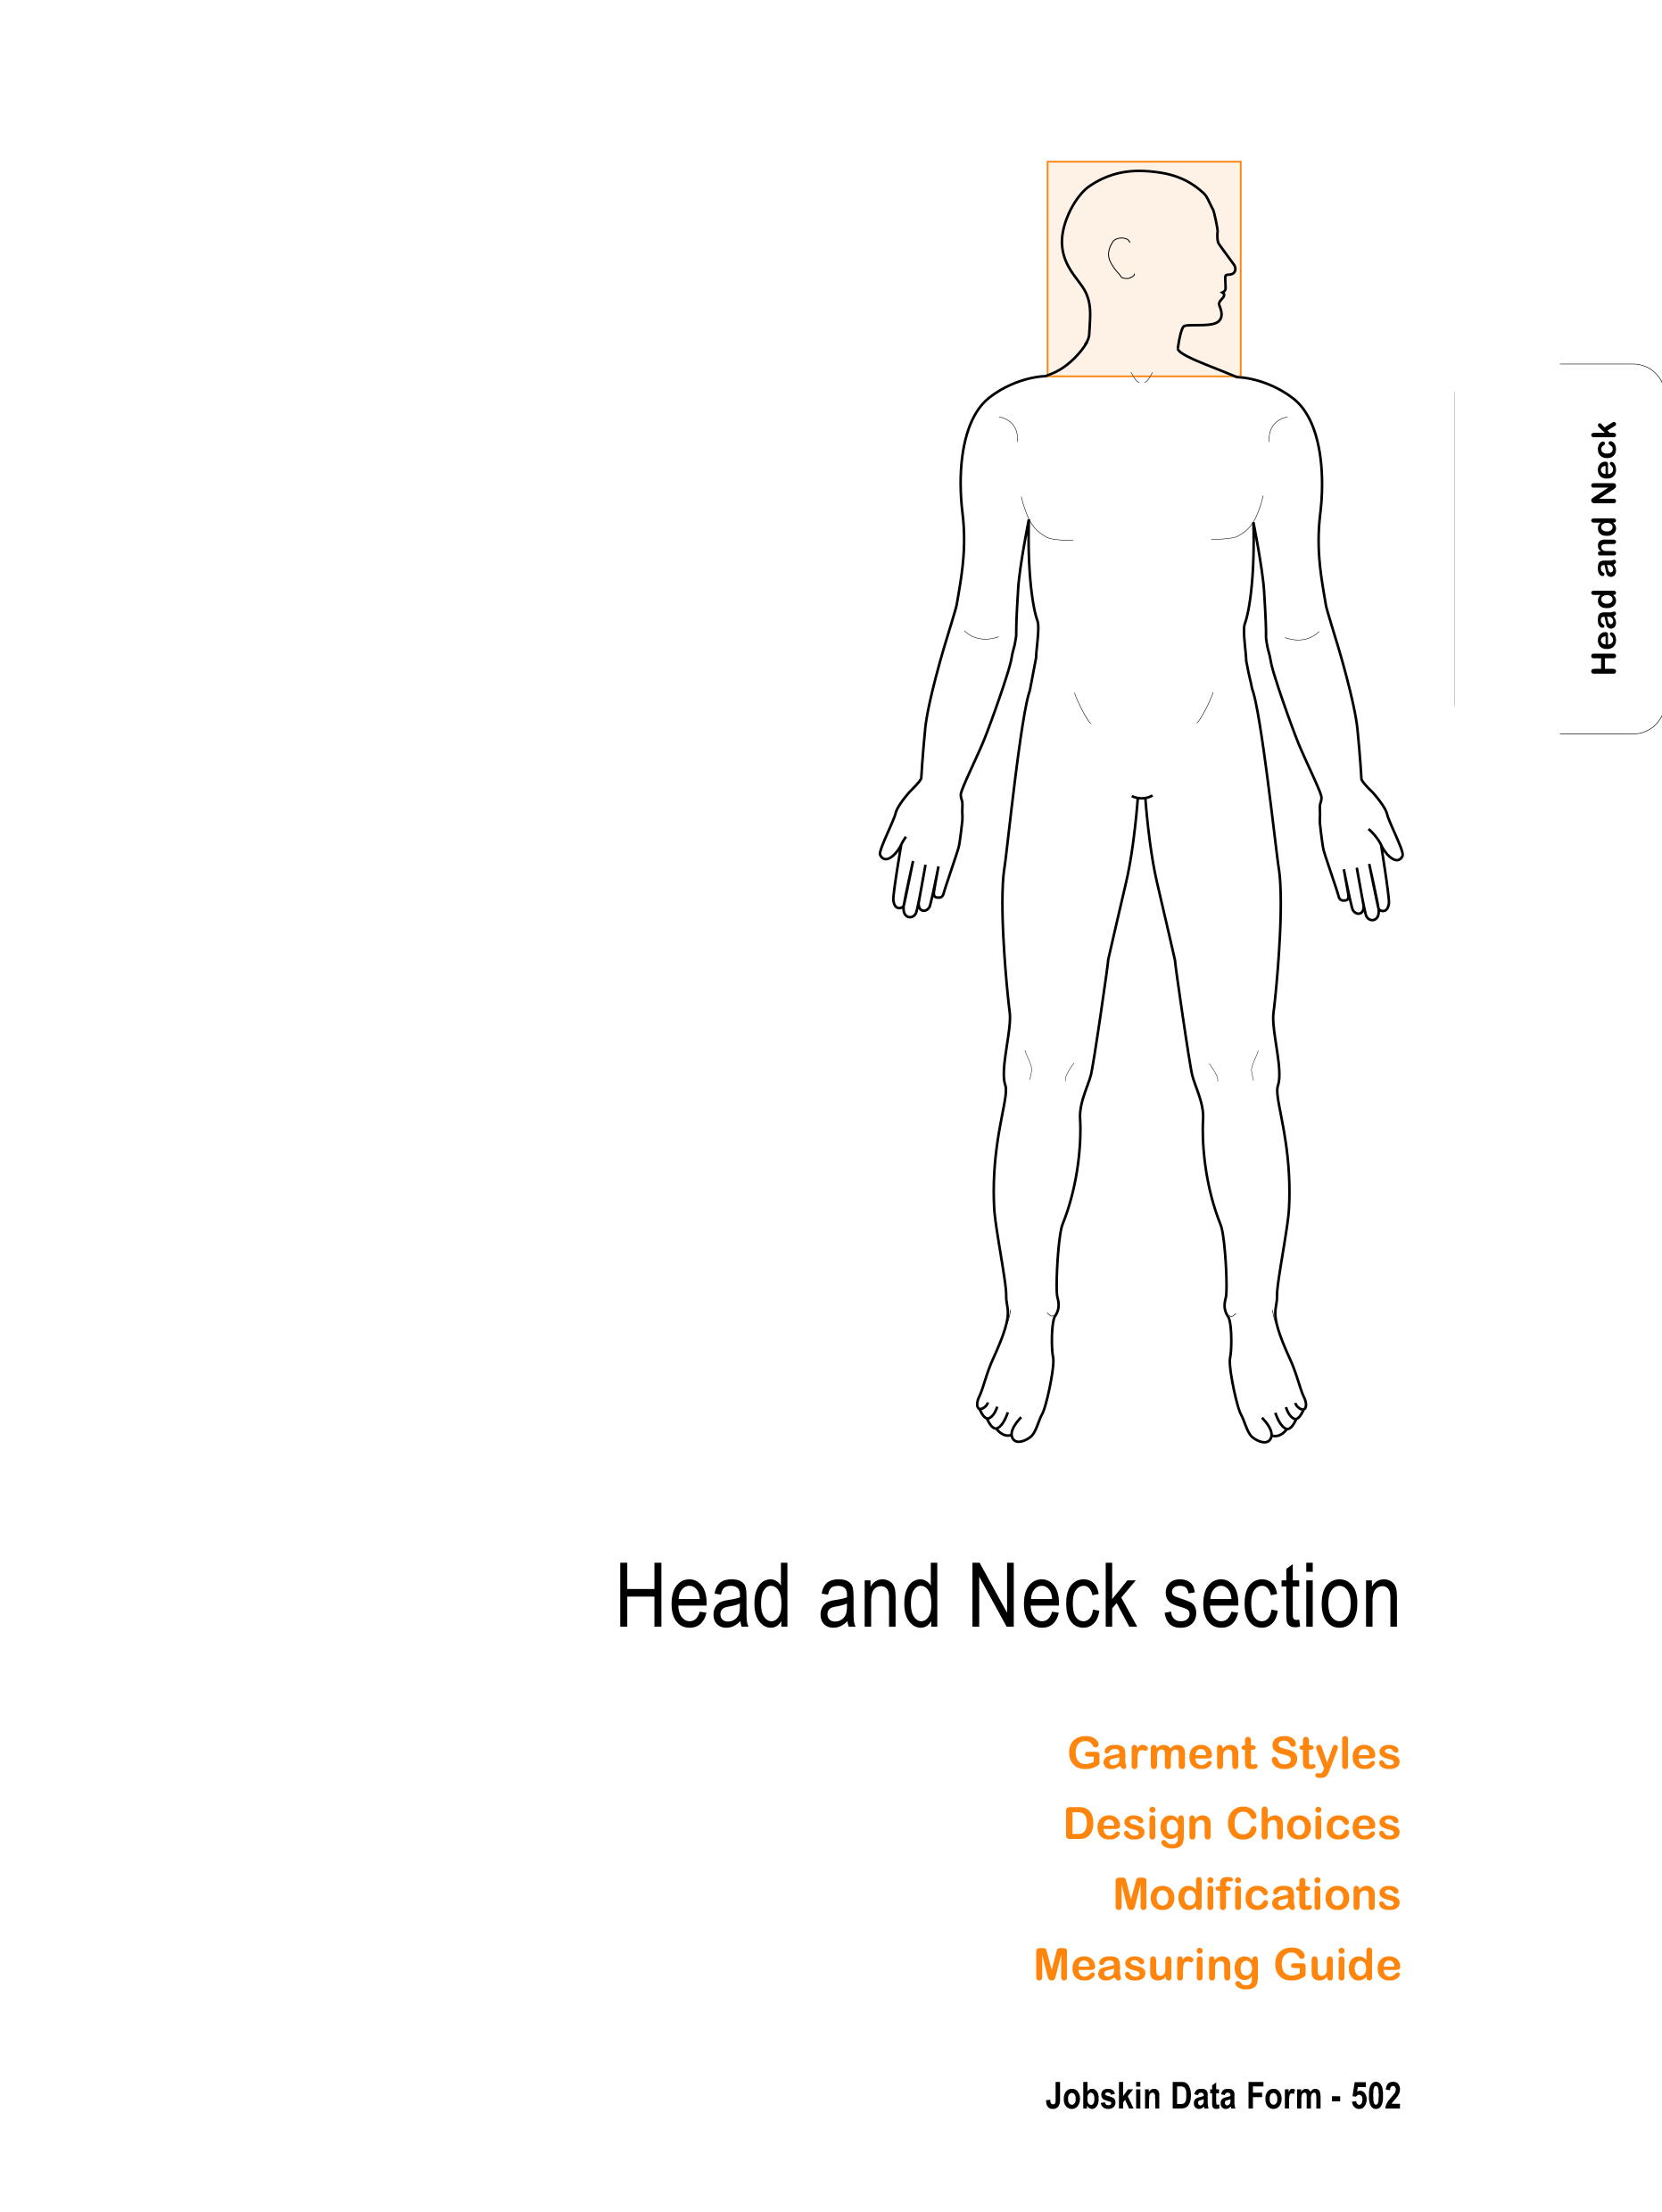 Head and neck how to measure section